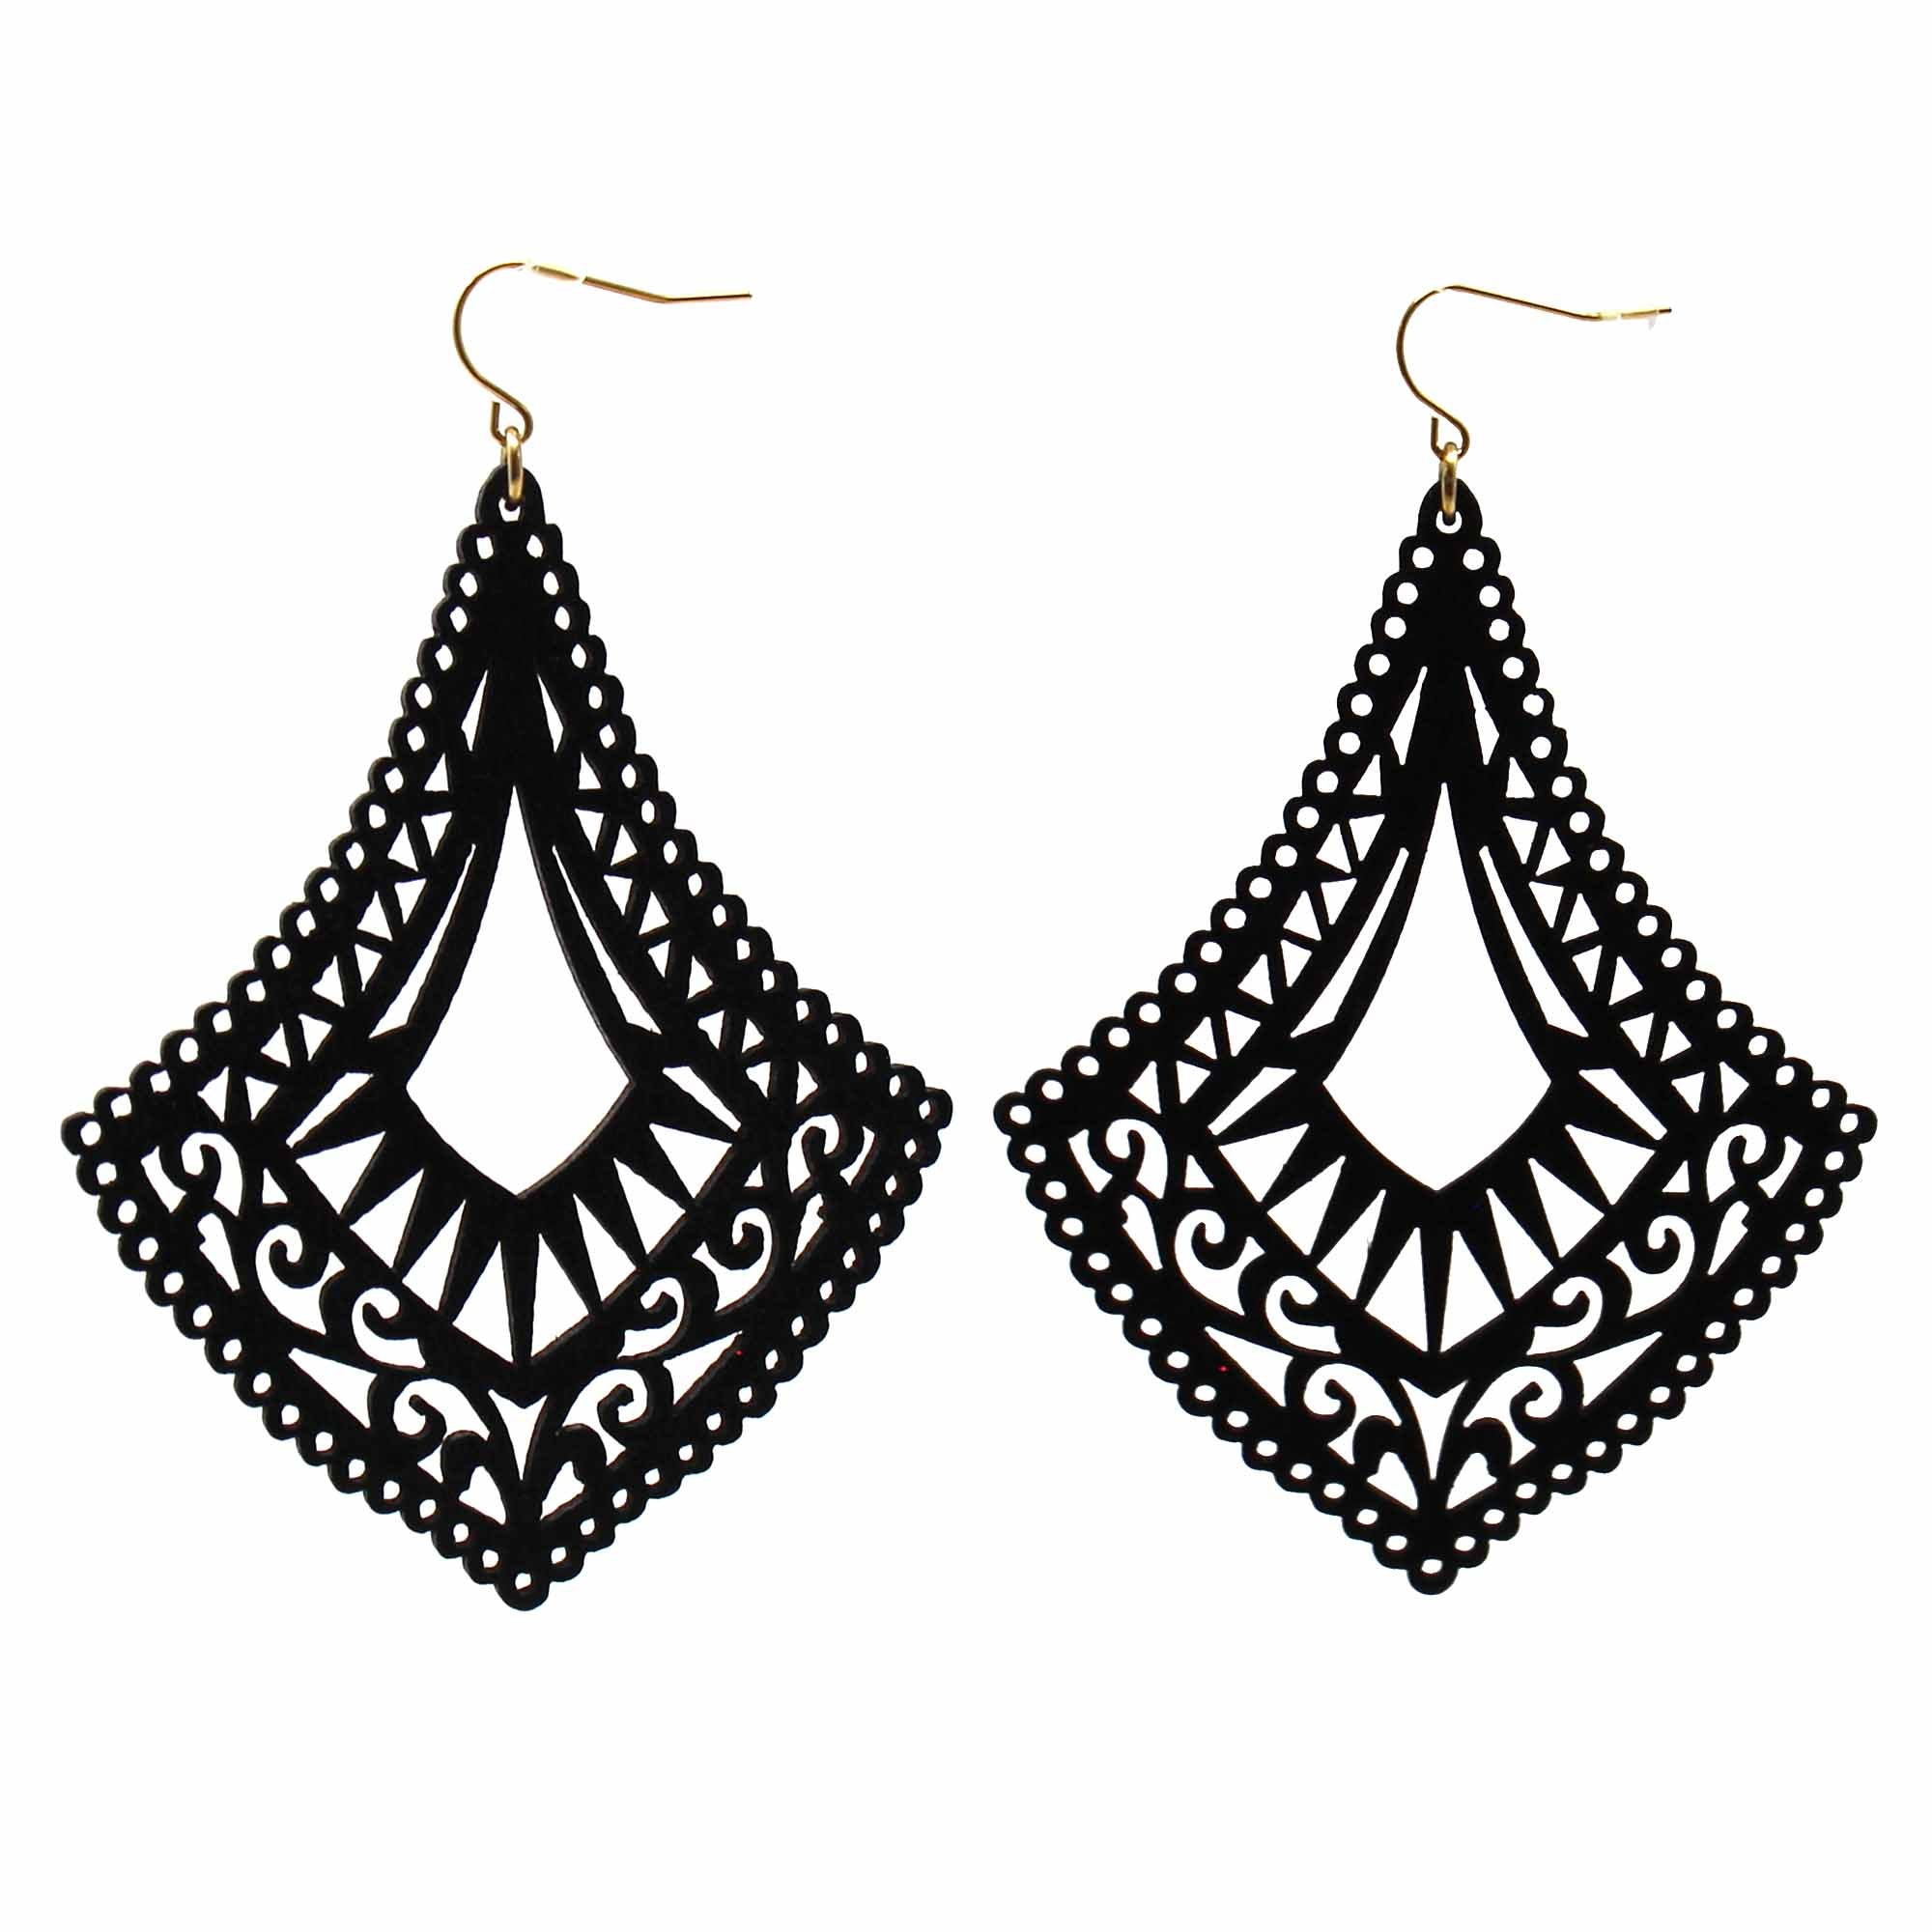 Bernadine - Intricate Large Wood Cutout Earrings